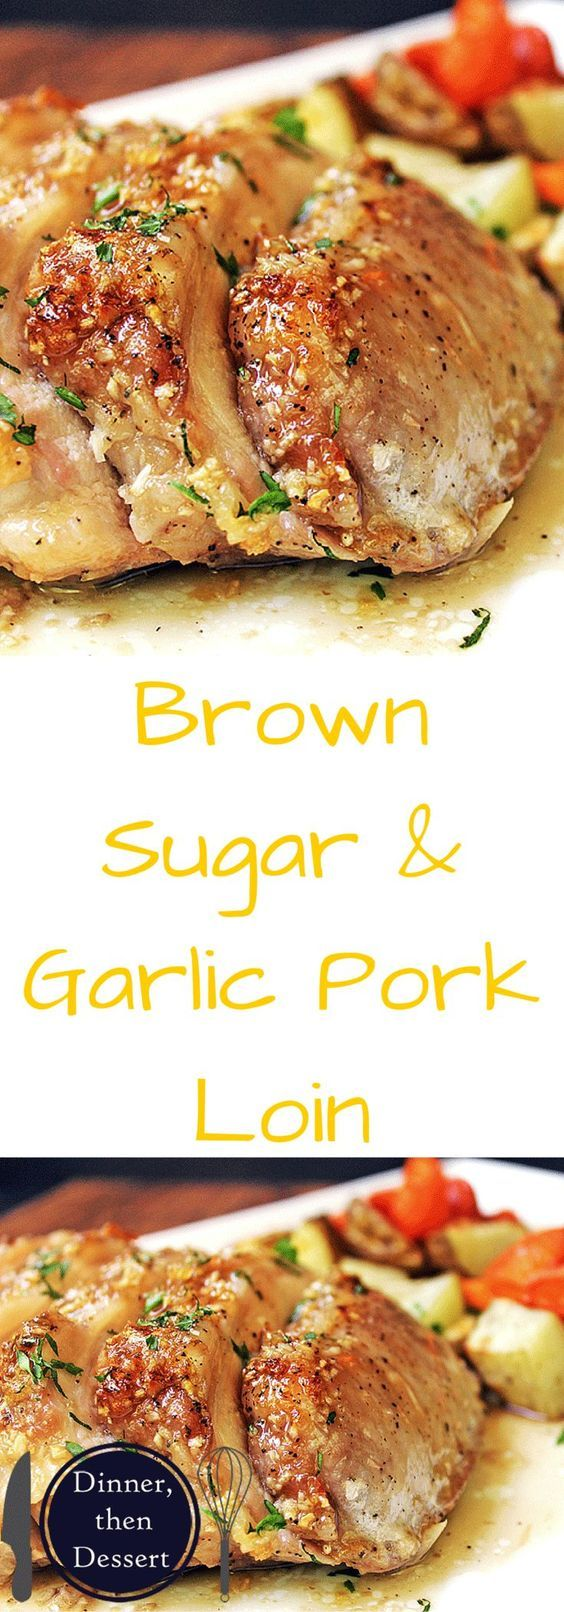 Brown Sugar Garlic Pork with Carrots